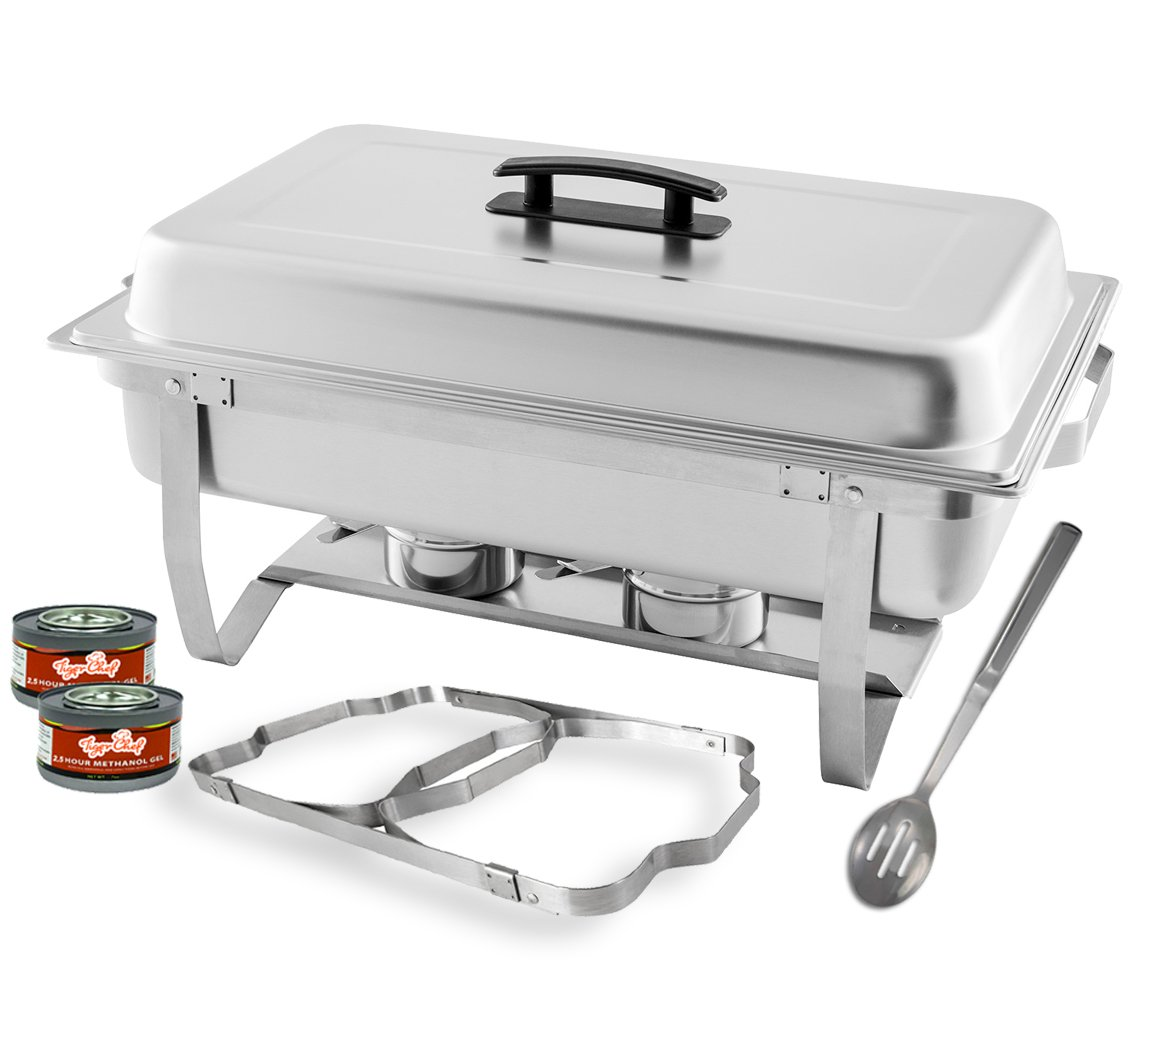 TigerChef 8 Quart Full Size Stainless Steel Chafer with Folding Frame and Cool-Touch Plastic on top - includes 2 Free Chafing Gels and Slotted Serving Spoon (1, 8 Quart Chafer)… 8 Quart Chafer)… Chafing Dish